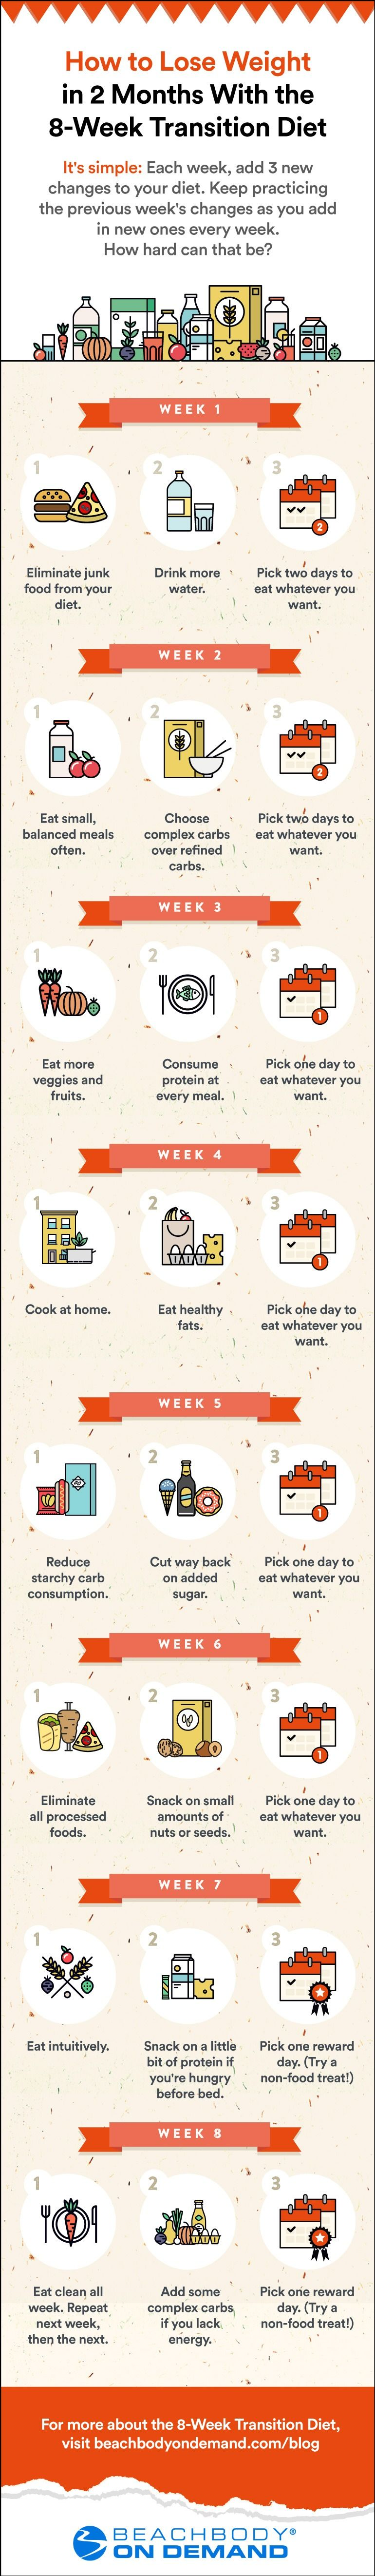 Weight loss products at home